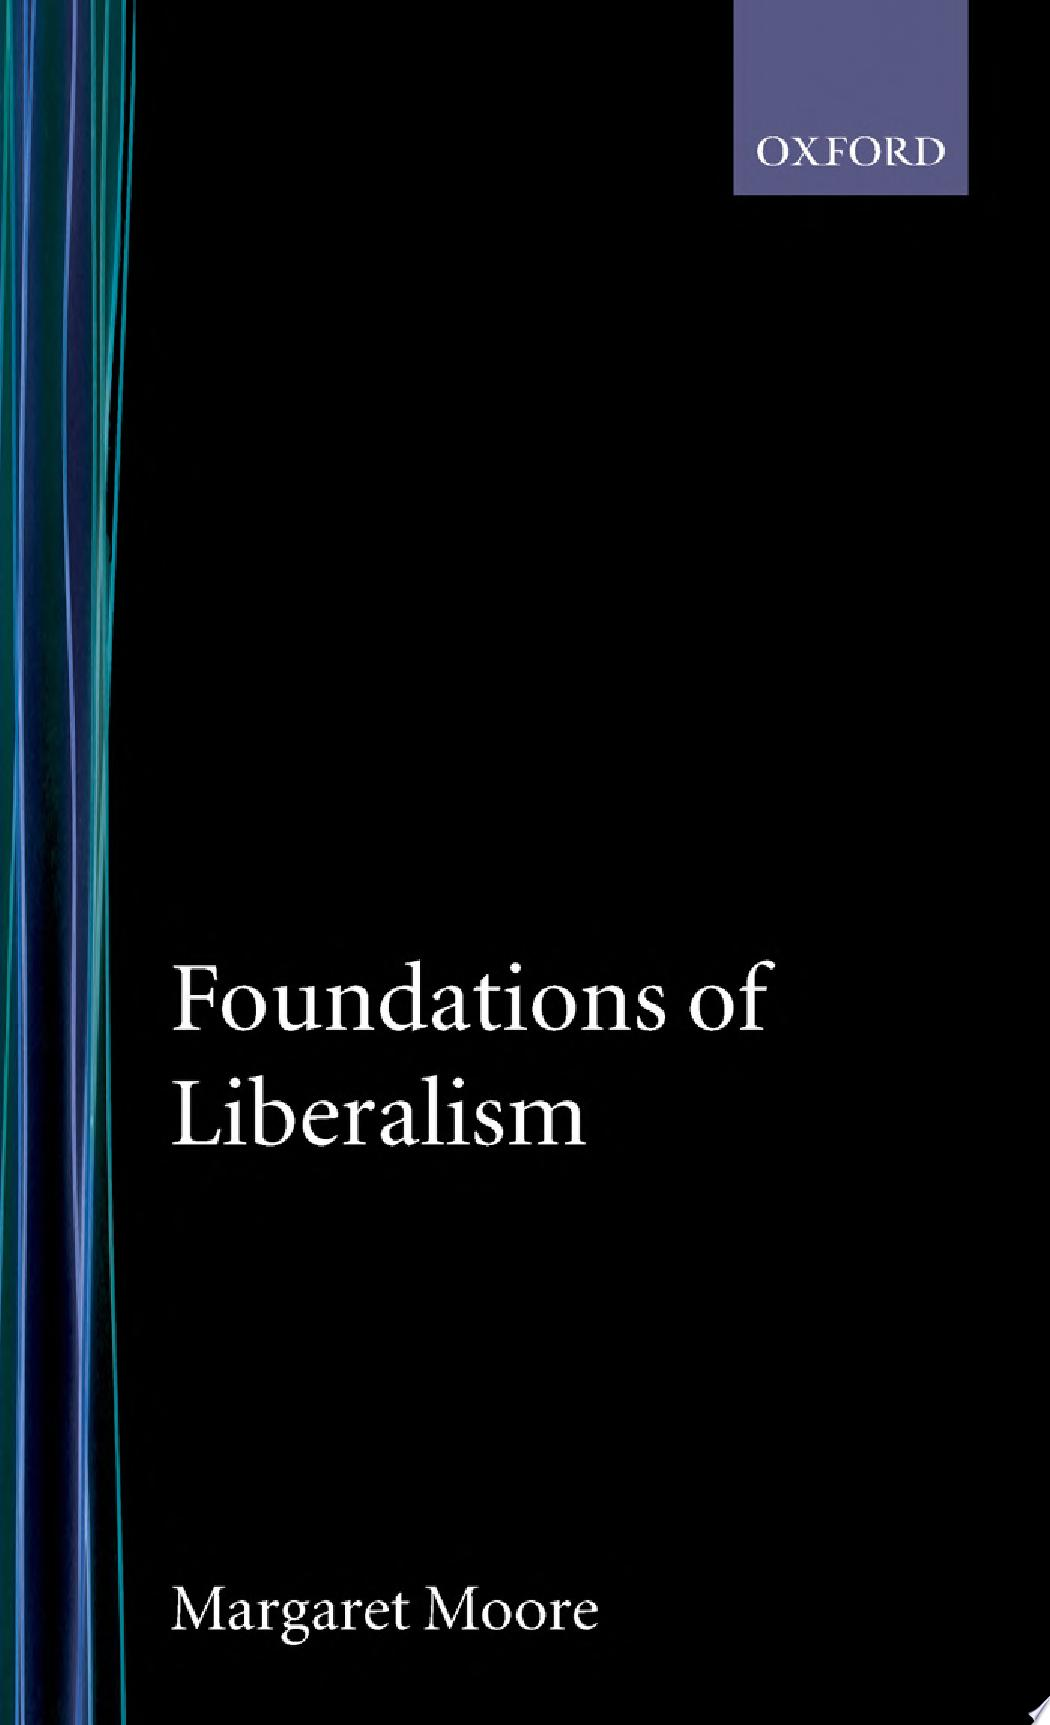 Foundations of Liberalism